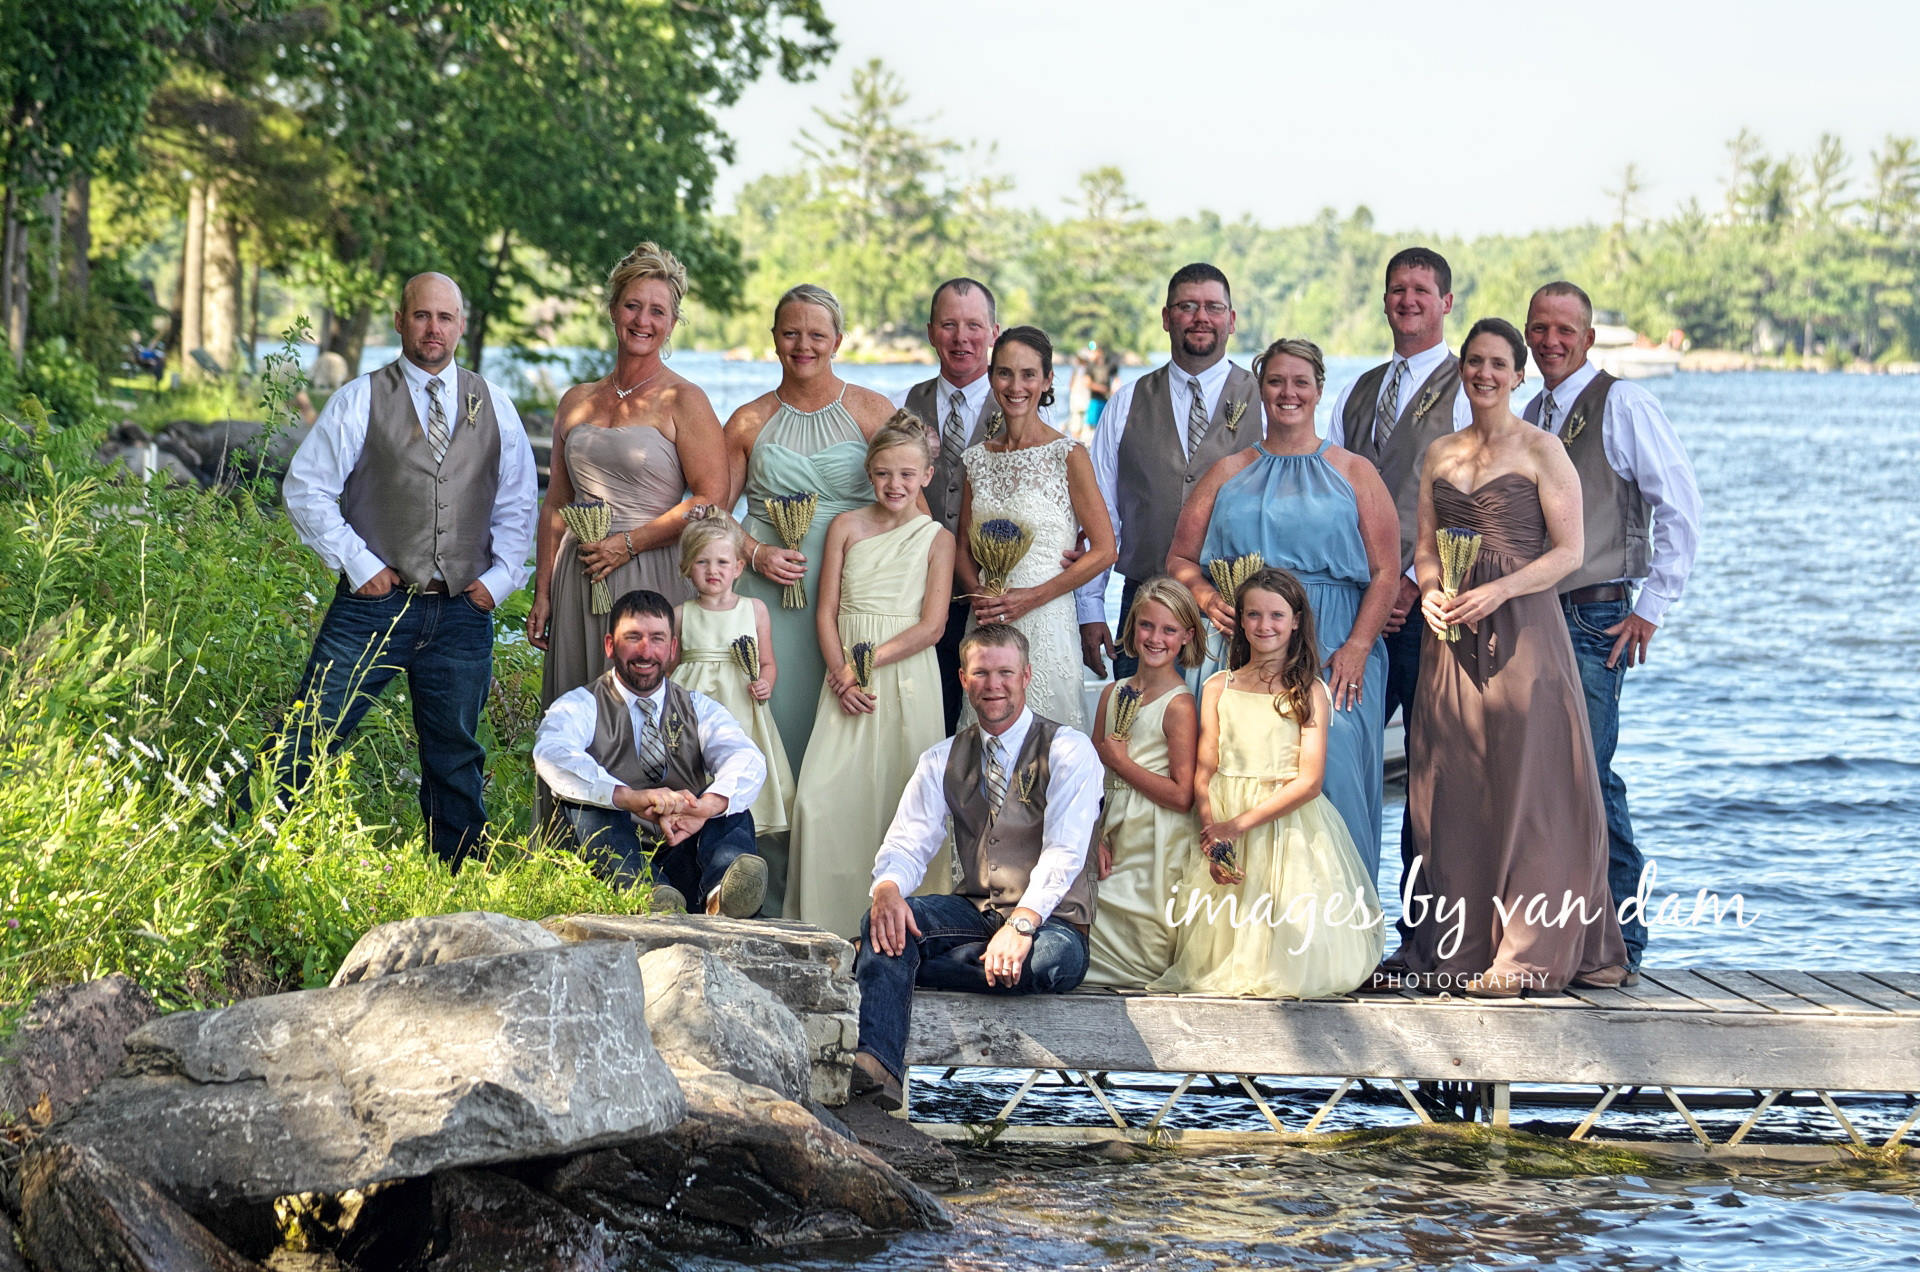 Ranch Styled wedding party on the dock at Beachwood Resort in Buckhorn, Ontario